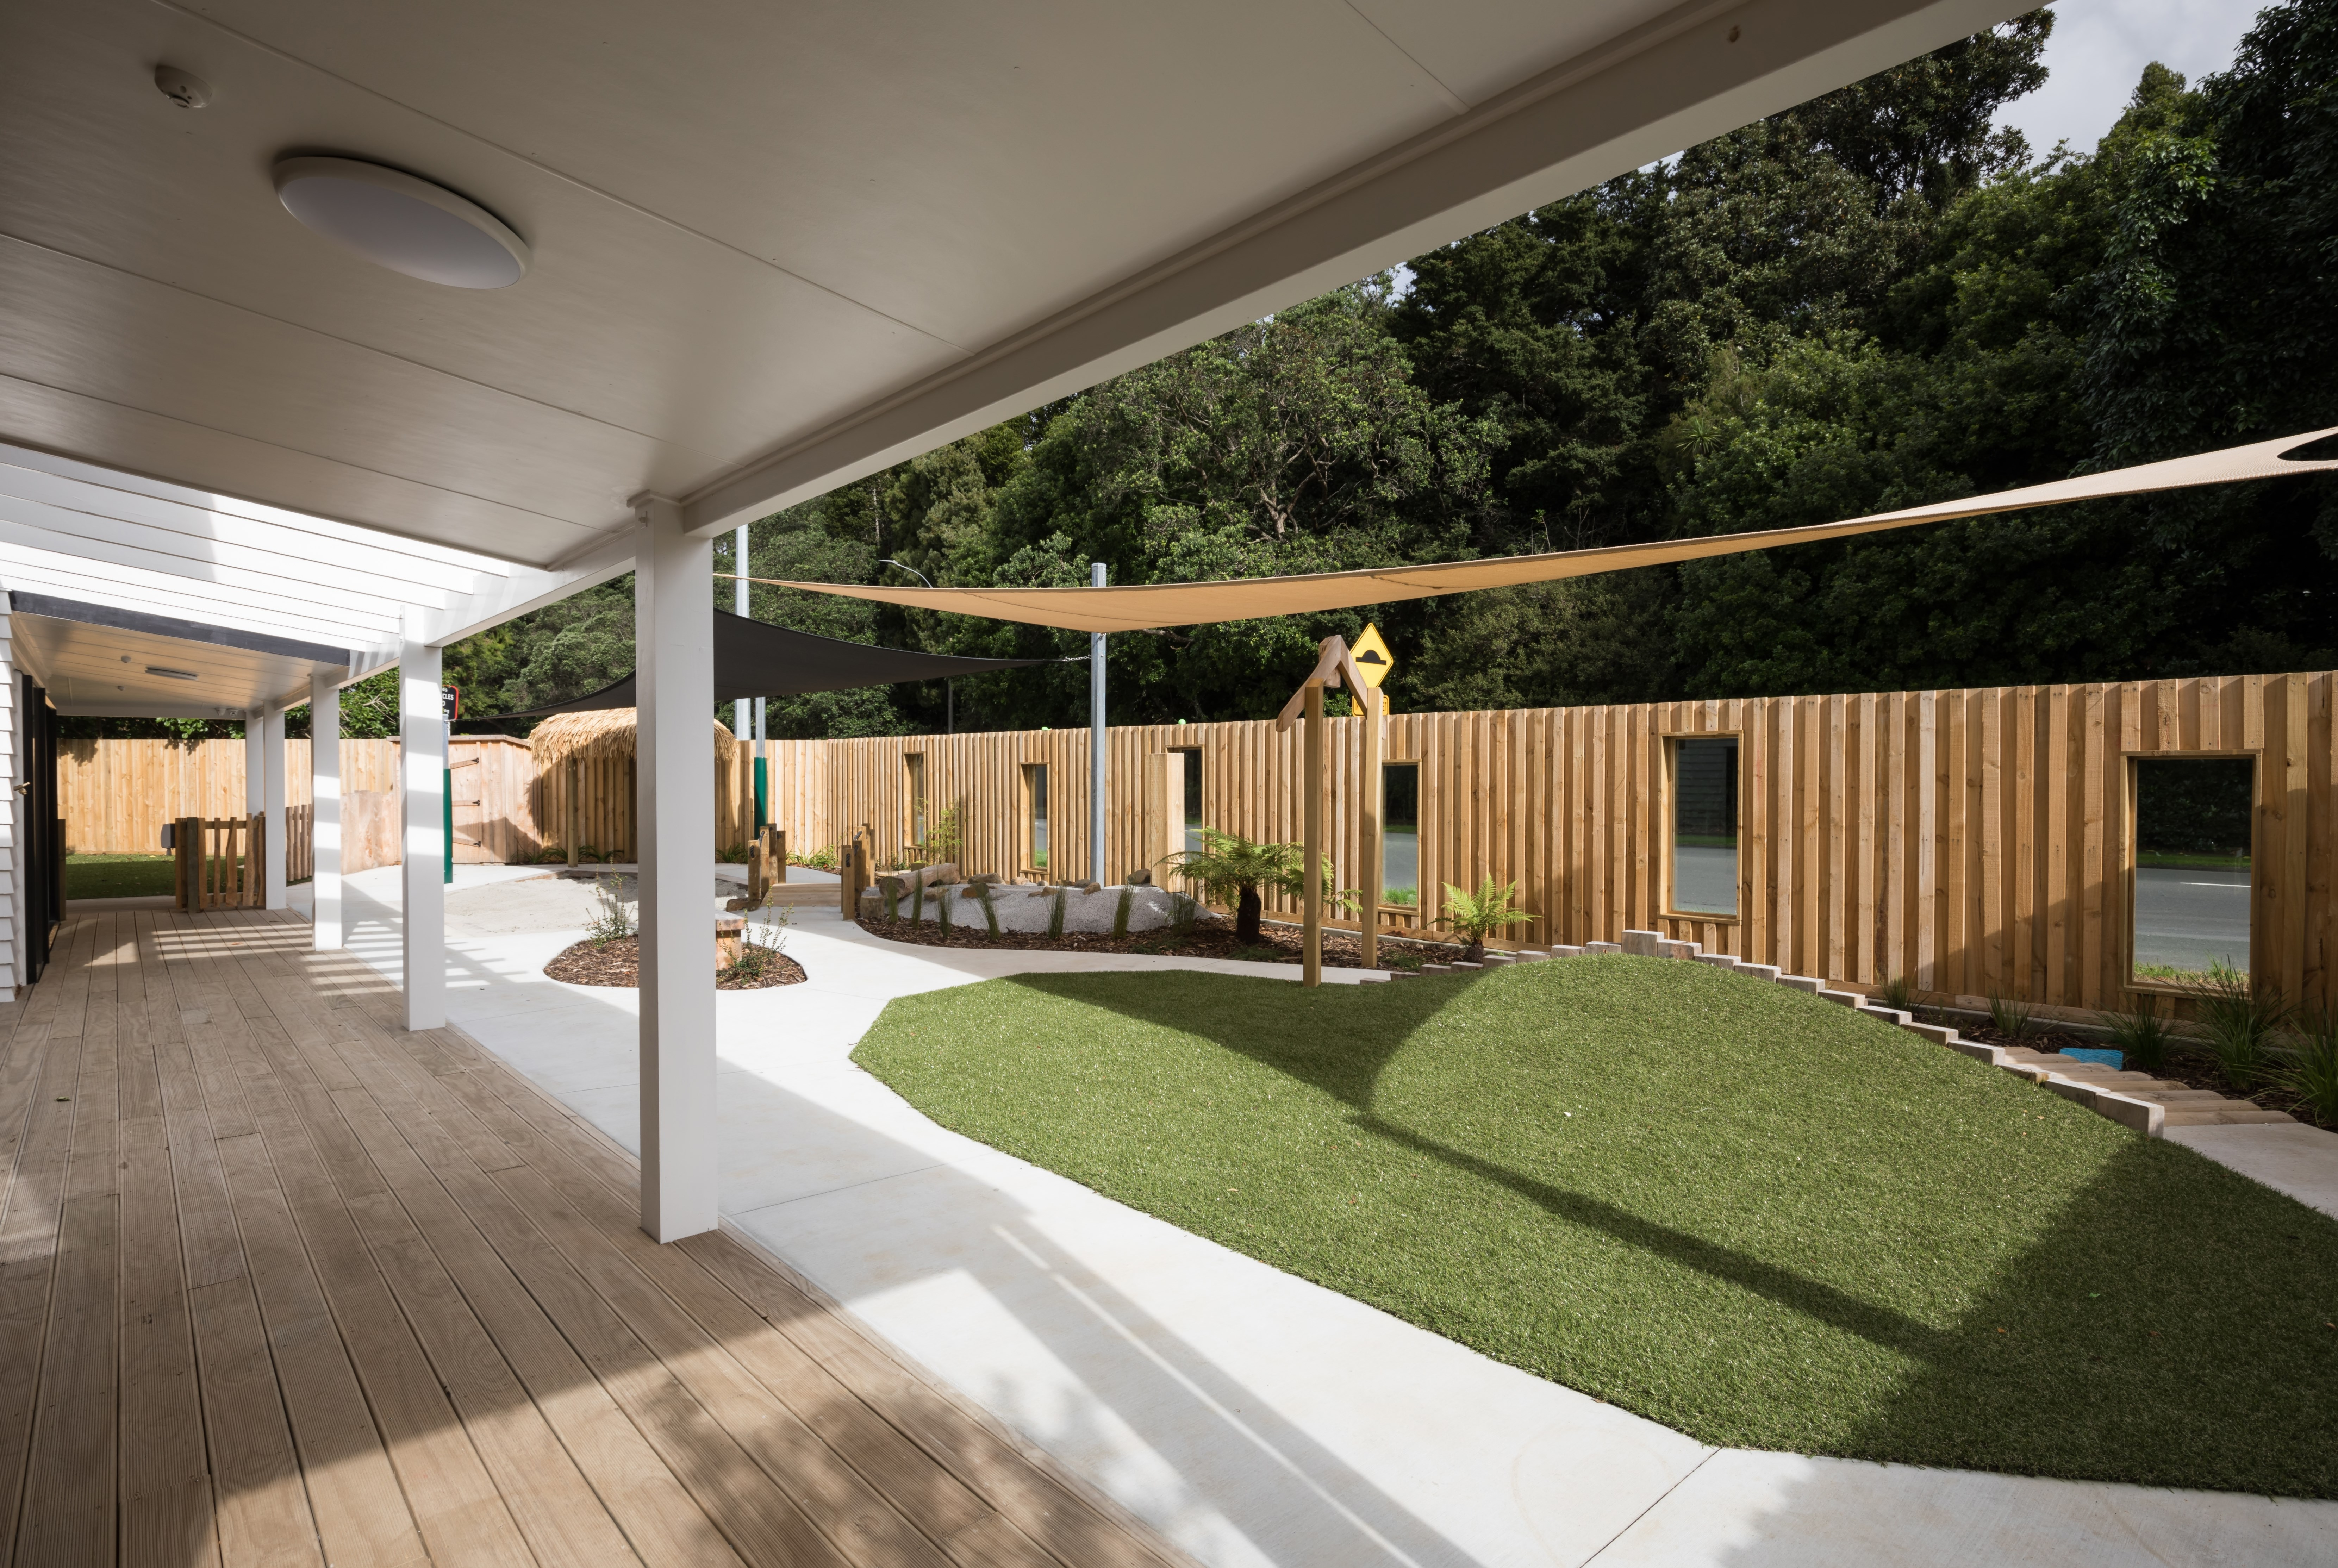 Lifestyle Architectural Services - All About Children - 85